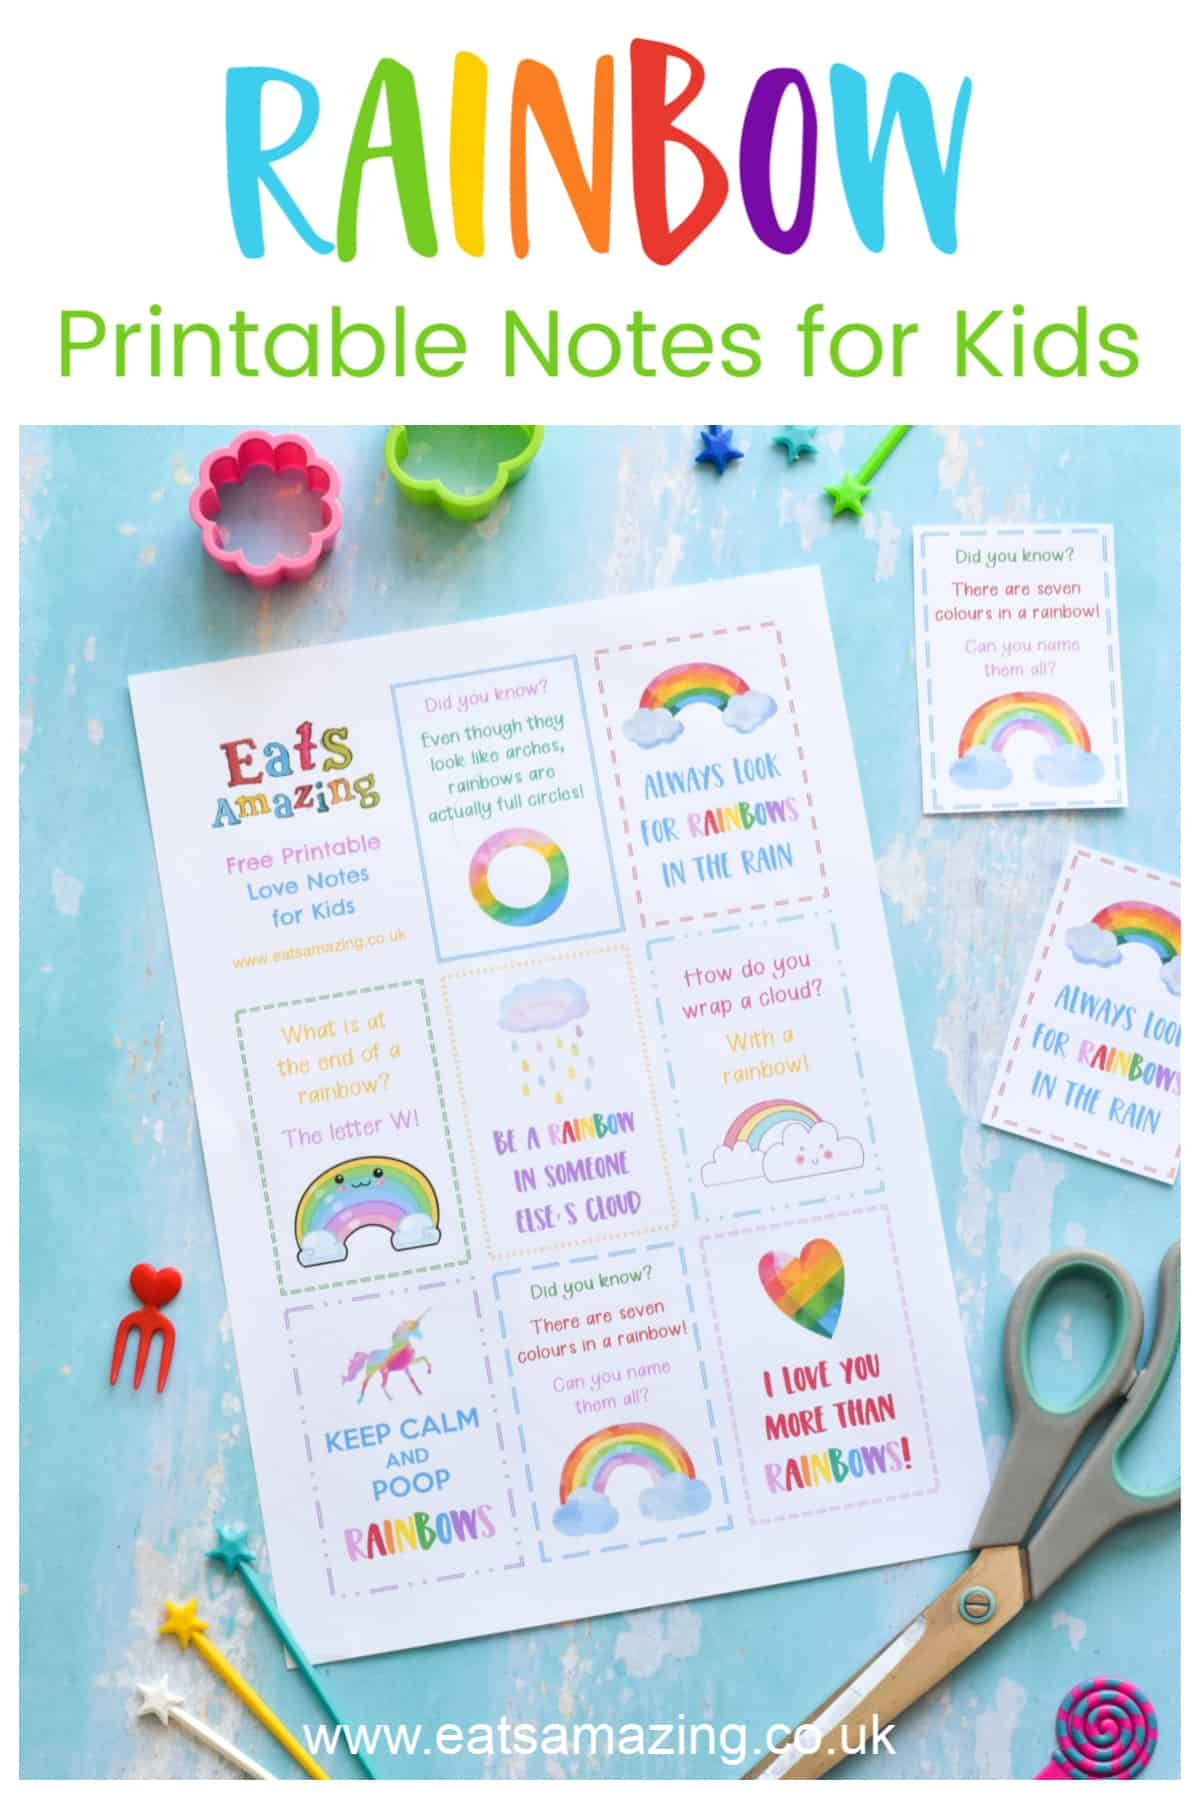 FREE Printable Rainbow themed notes for kids - perfect for lunch boxes school bags or hiding around the house for a fun surprise